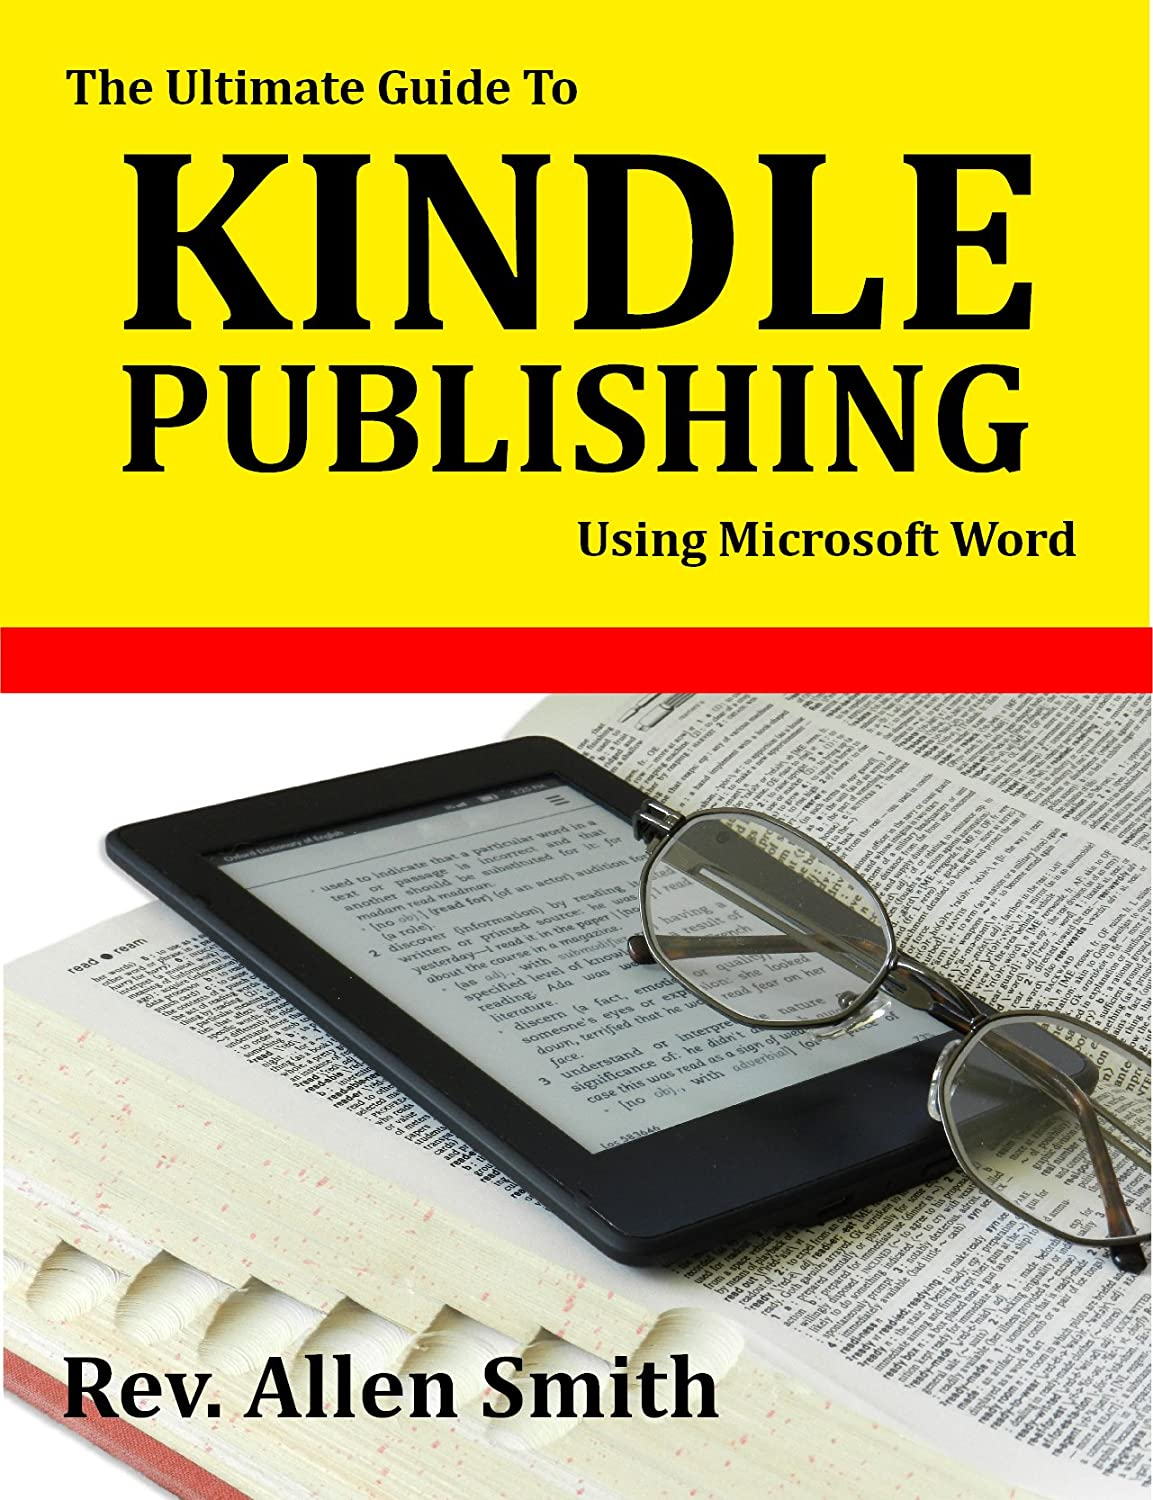 KINDLE-PUBLISHING-COVER-JPG-WEBSITE